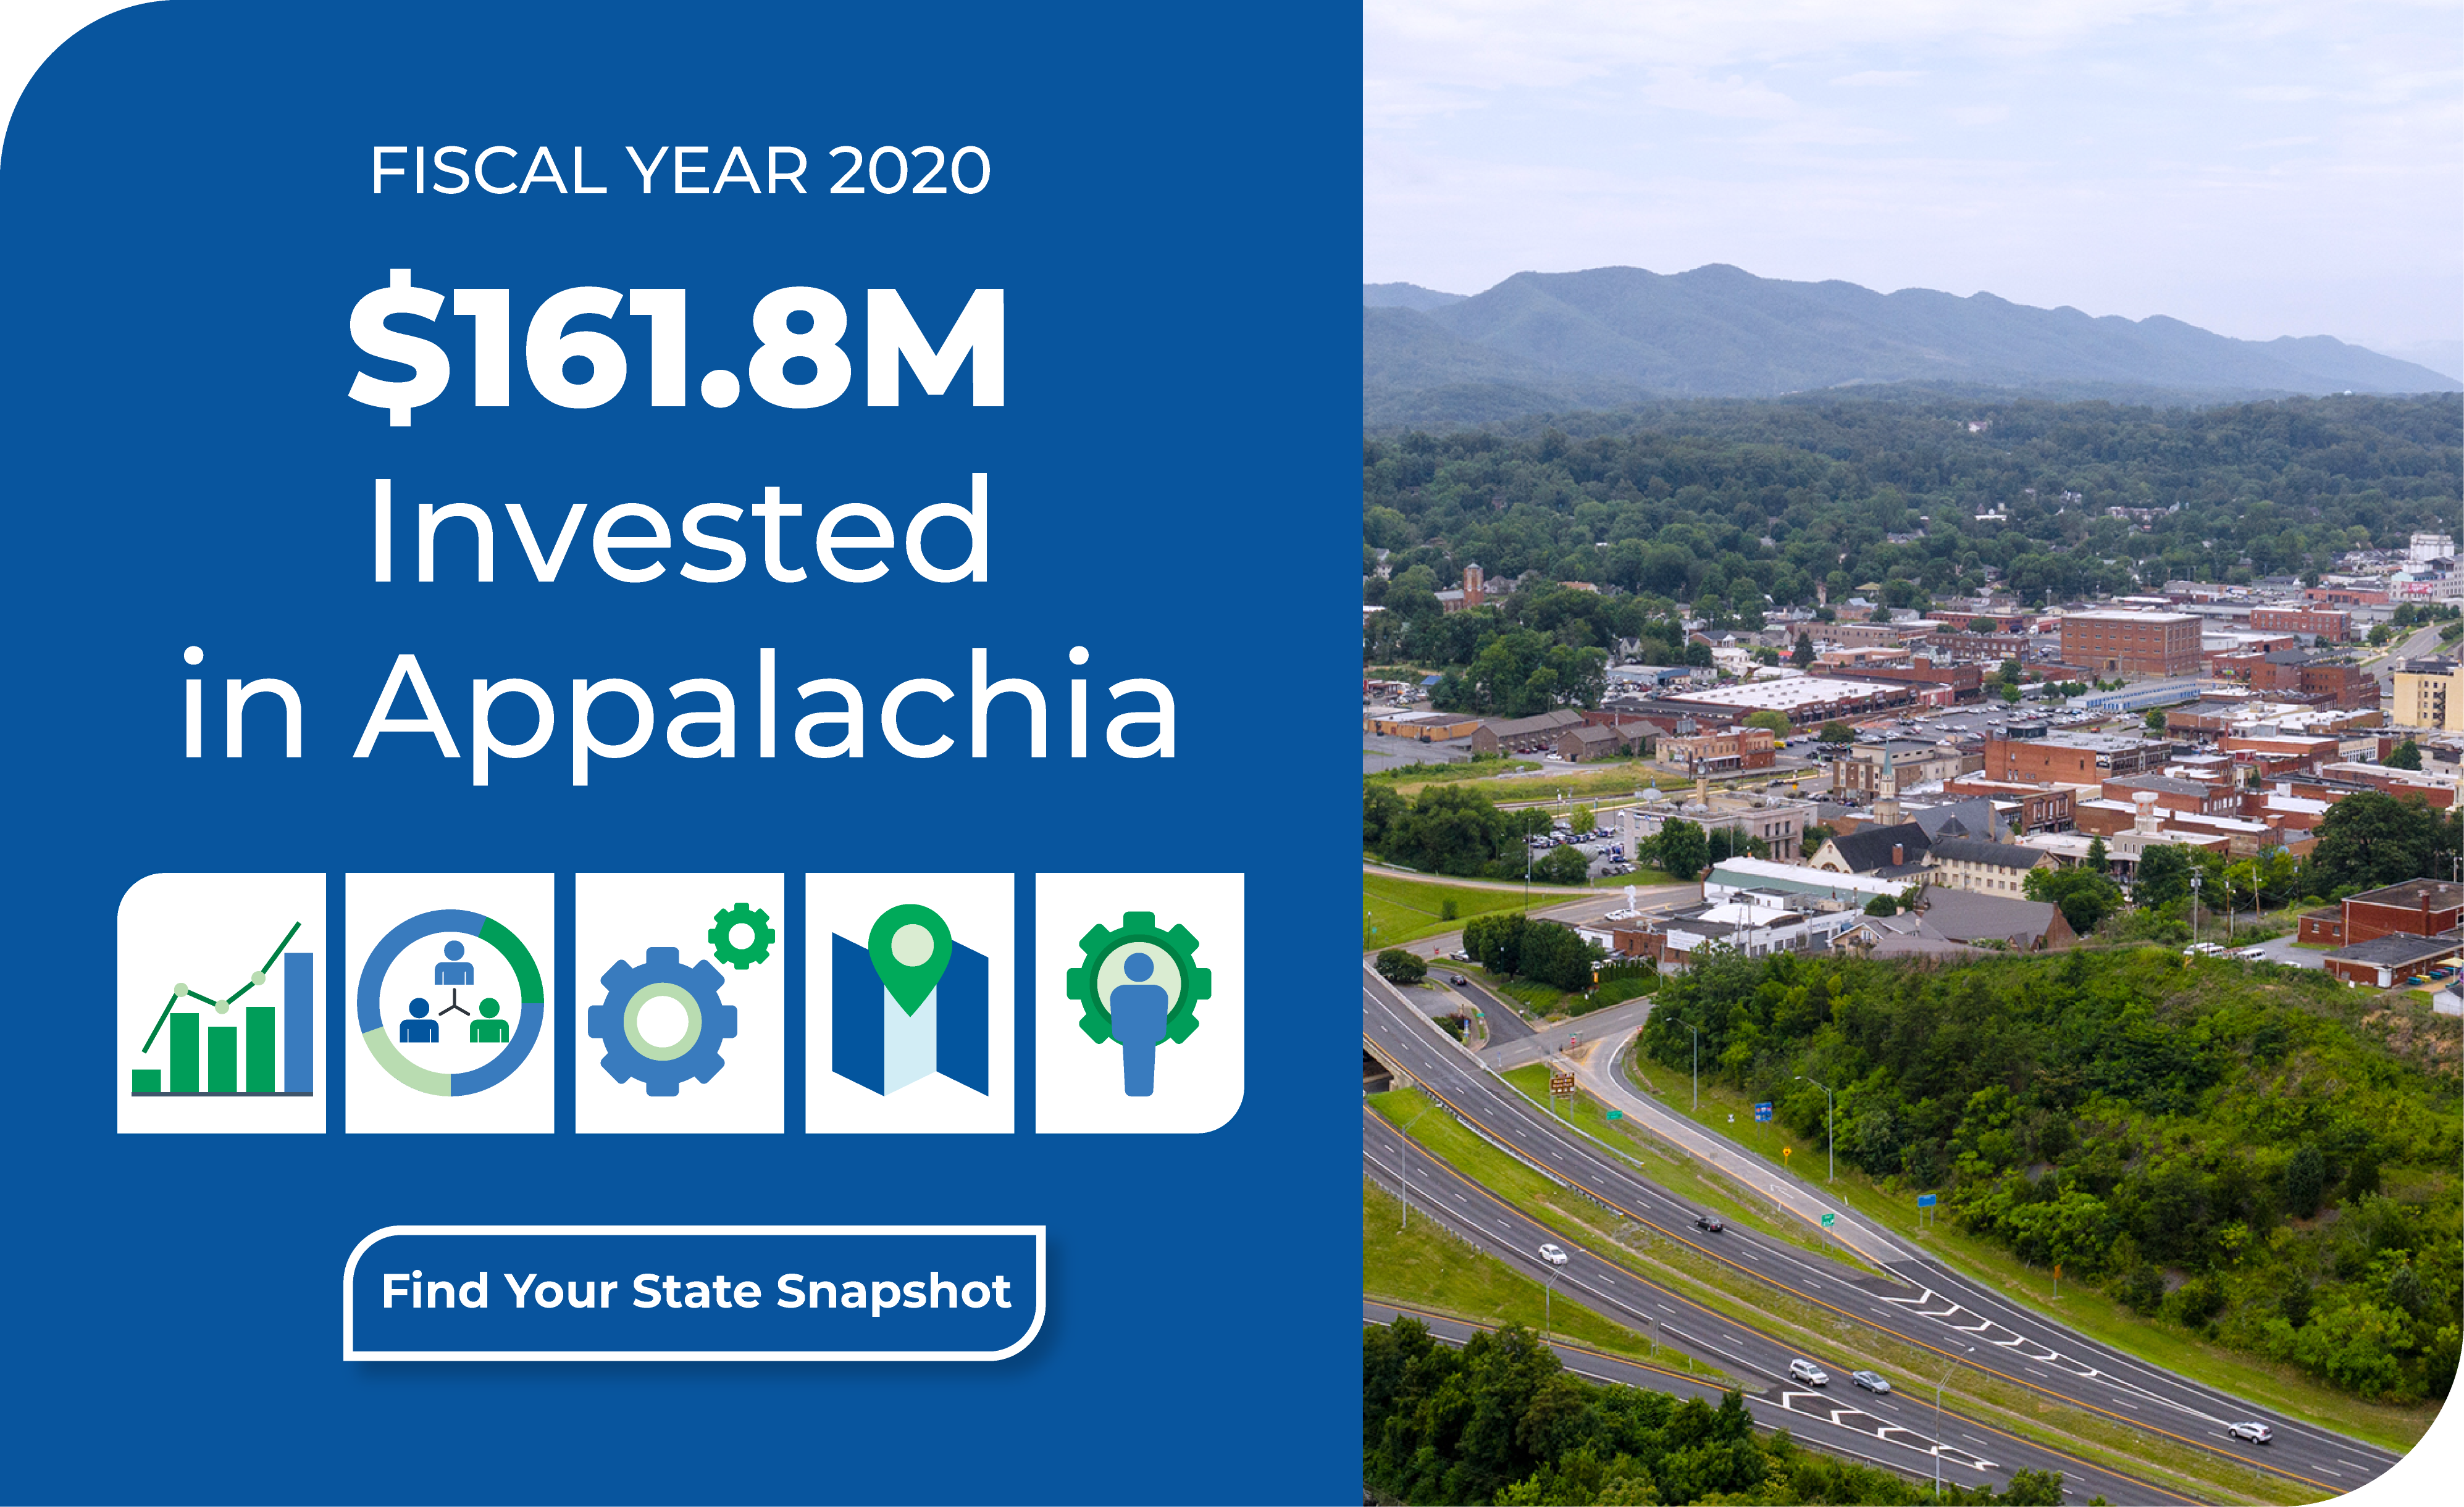 Fiscal Year 2020 $161.8 Million Invested in Appalachia. Click to find your state snapshot.